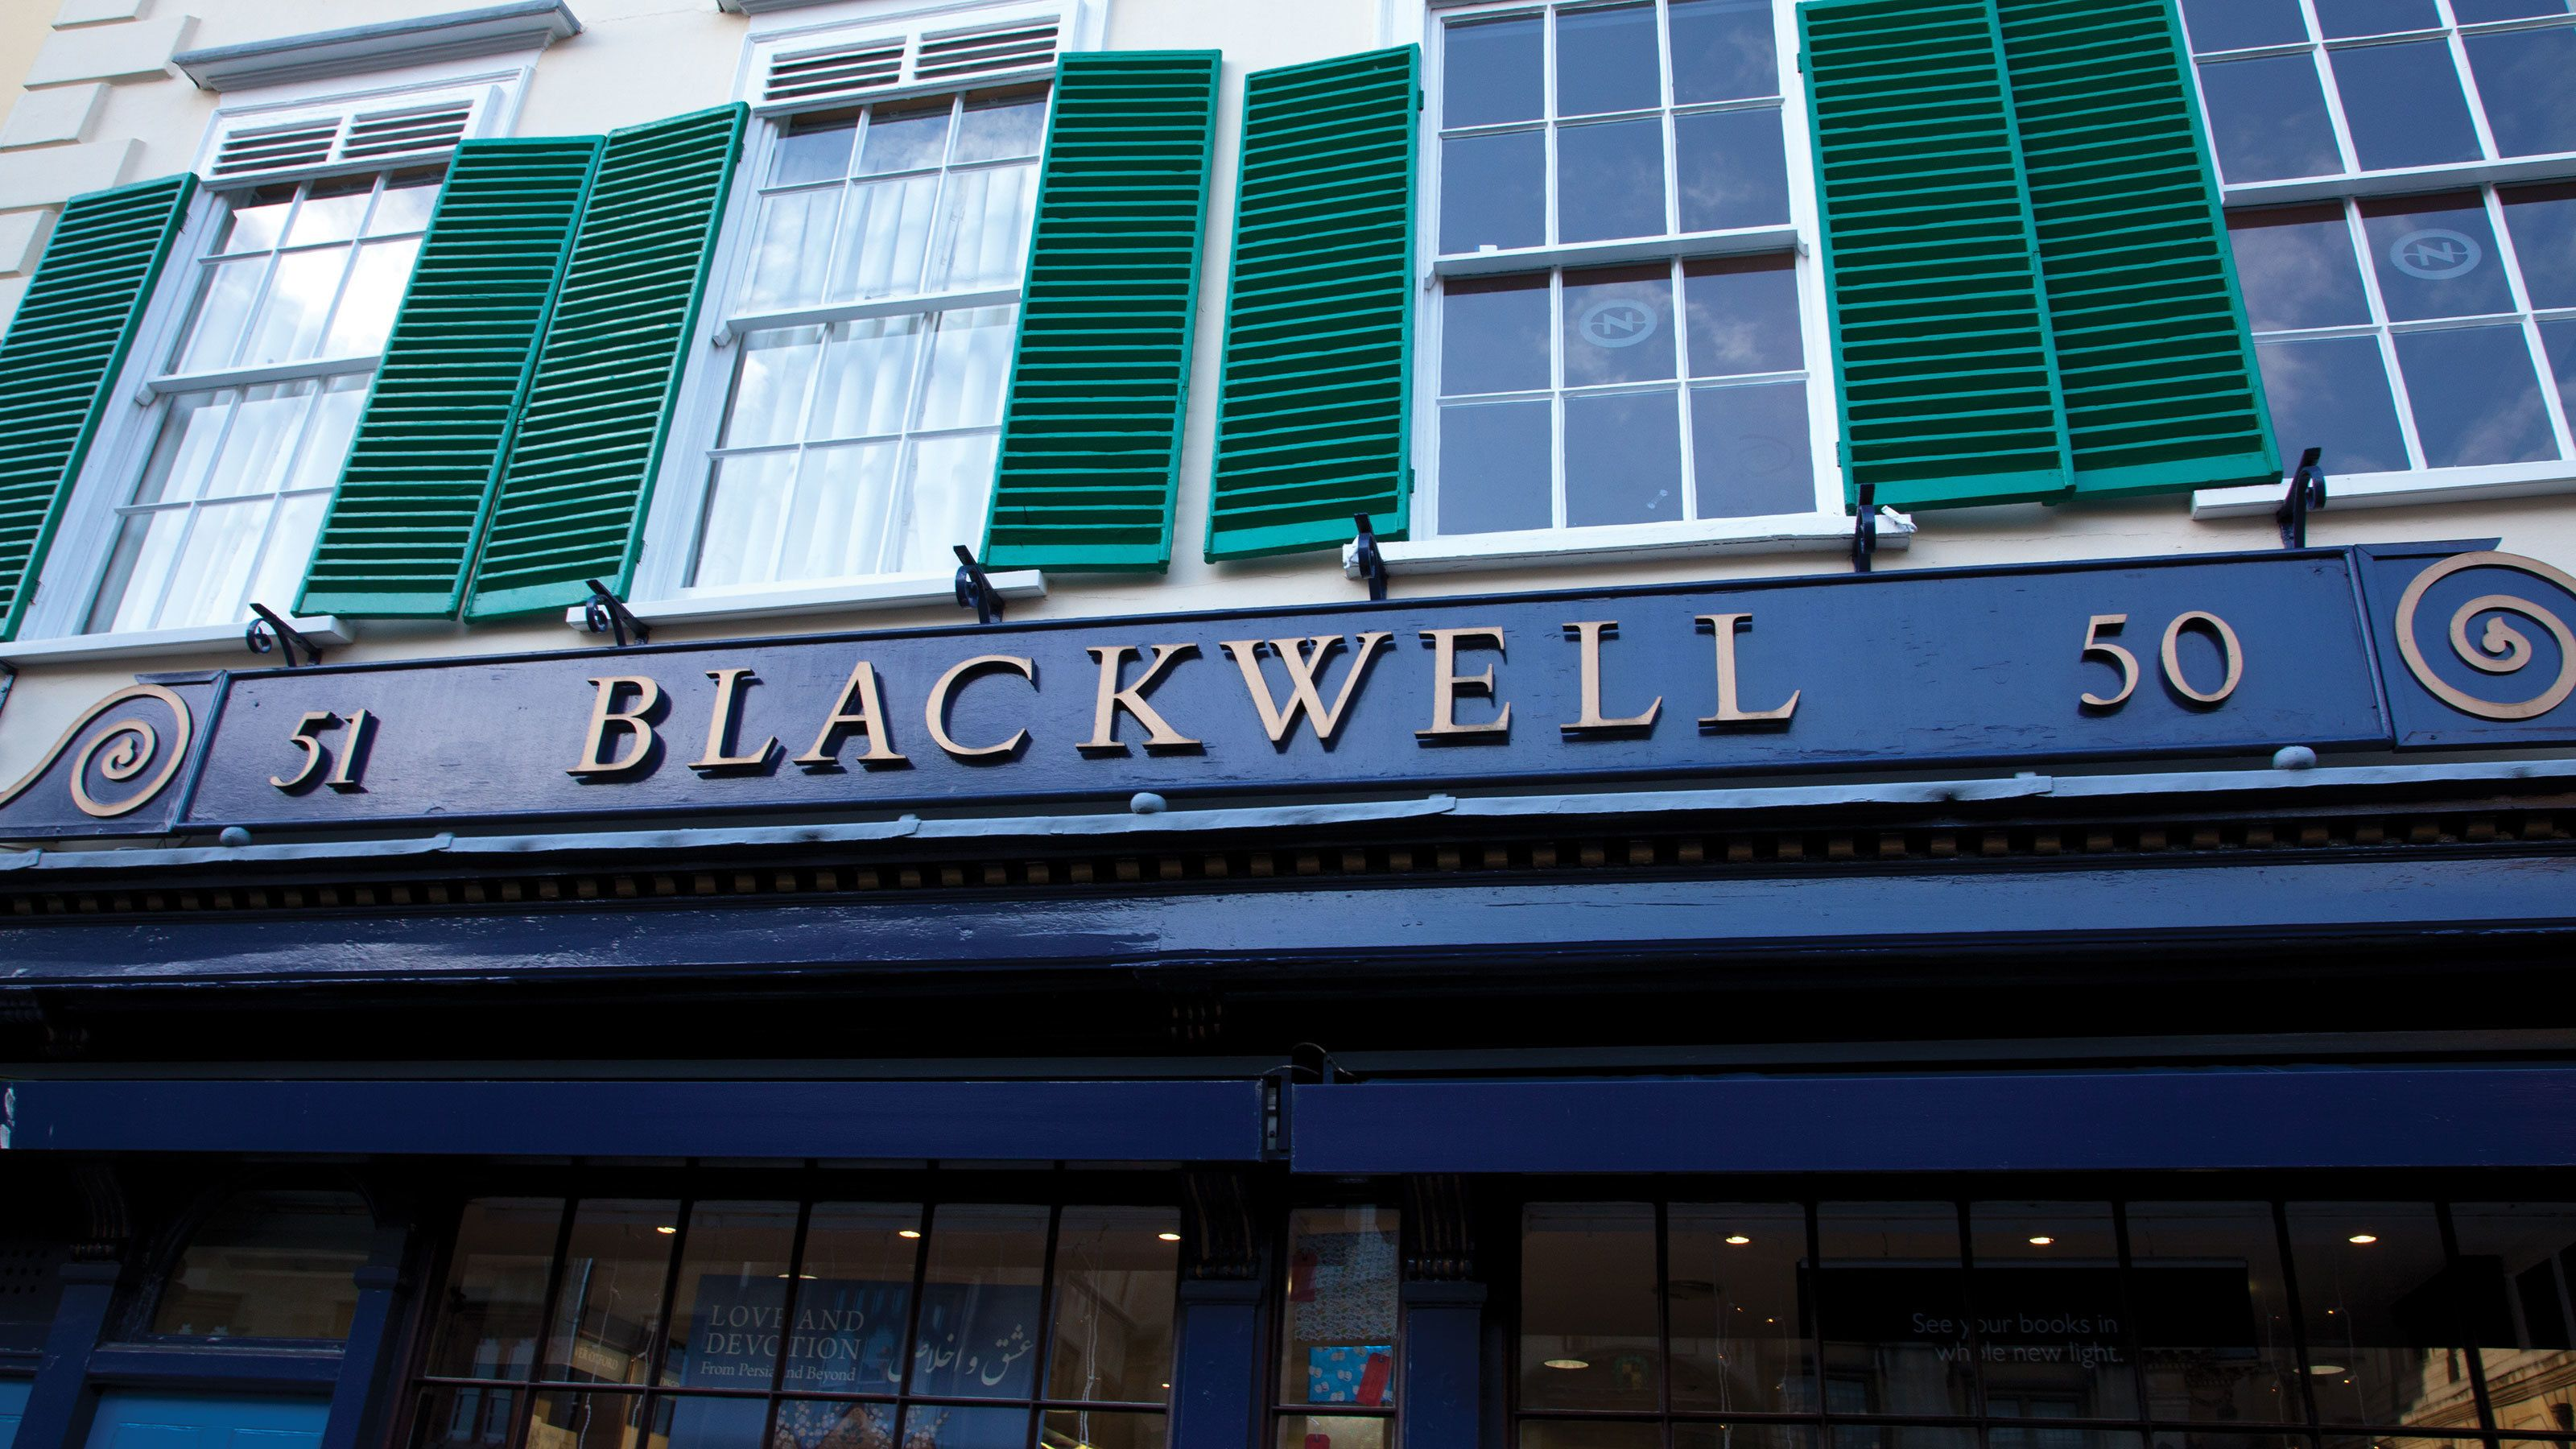 store front sign for Blackwell in London